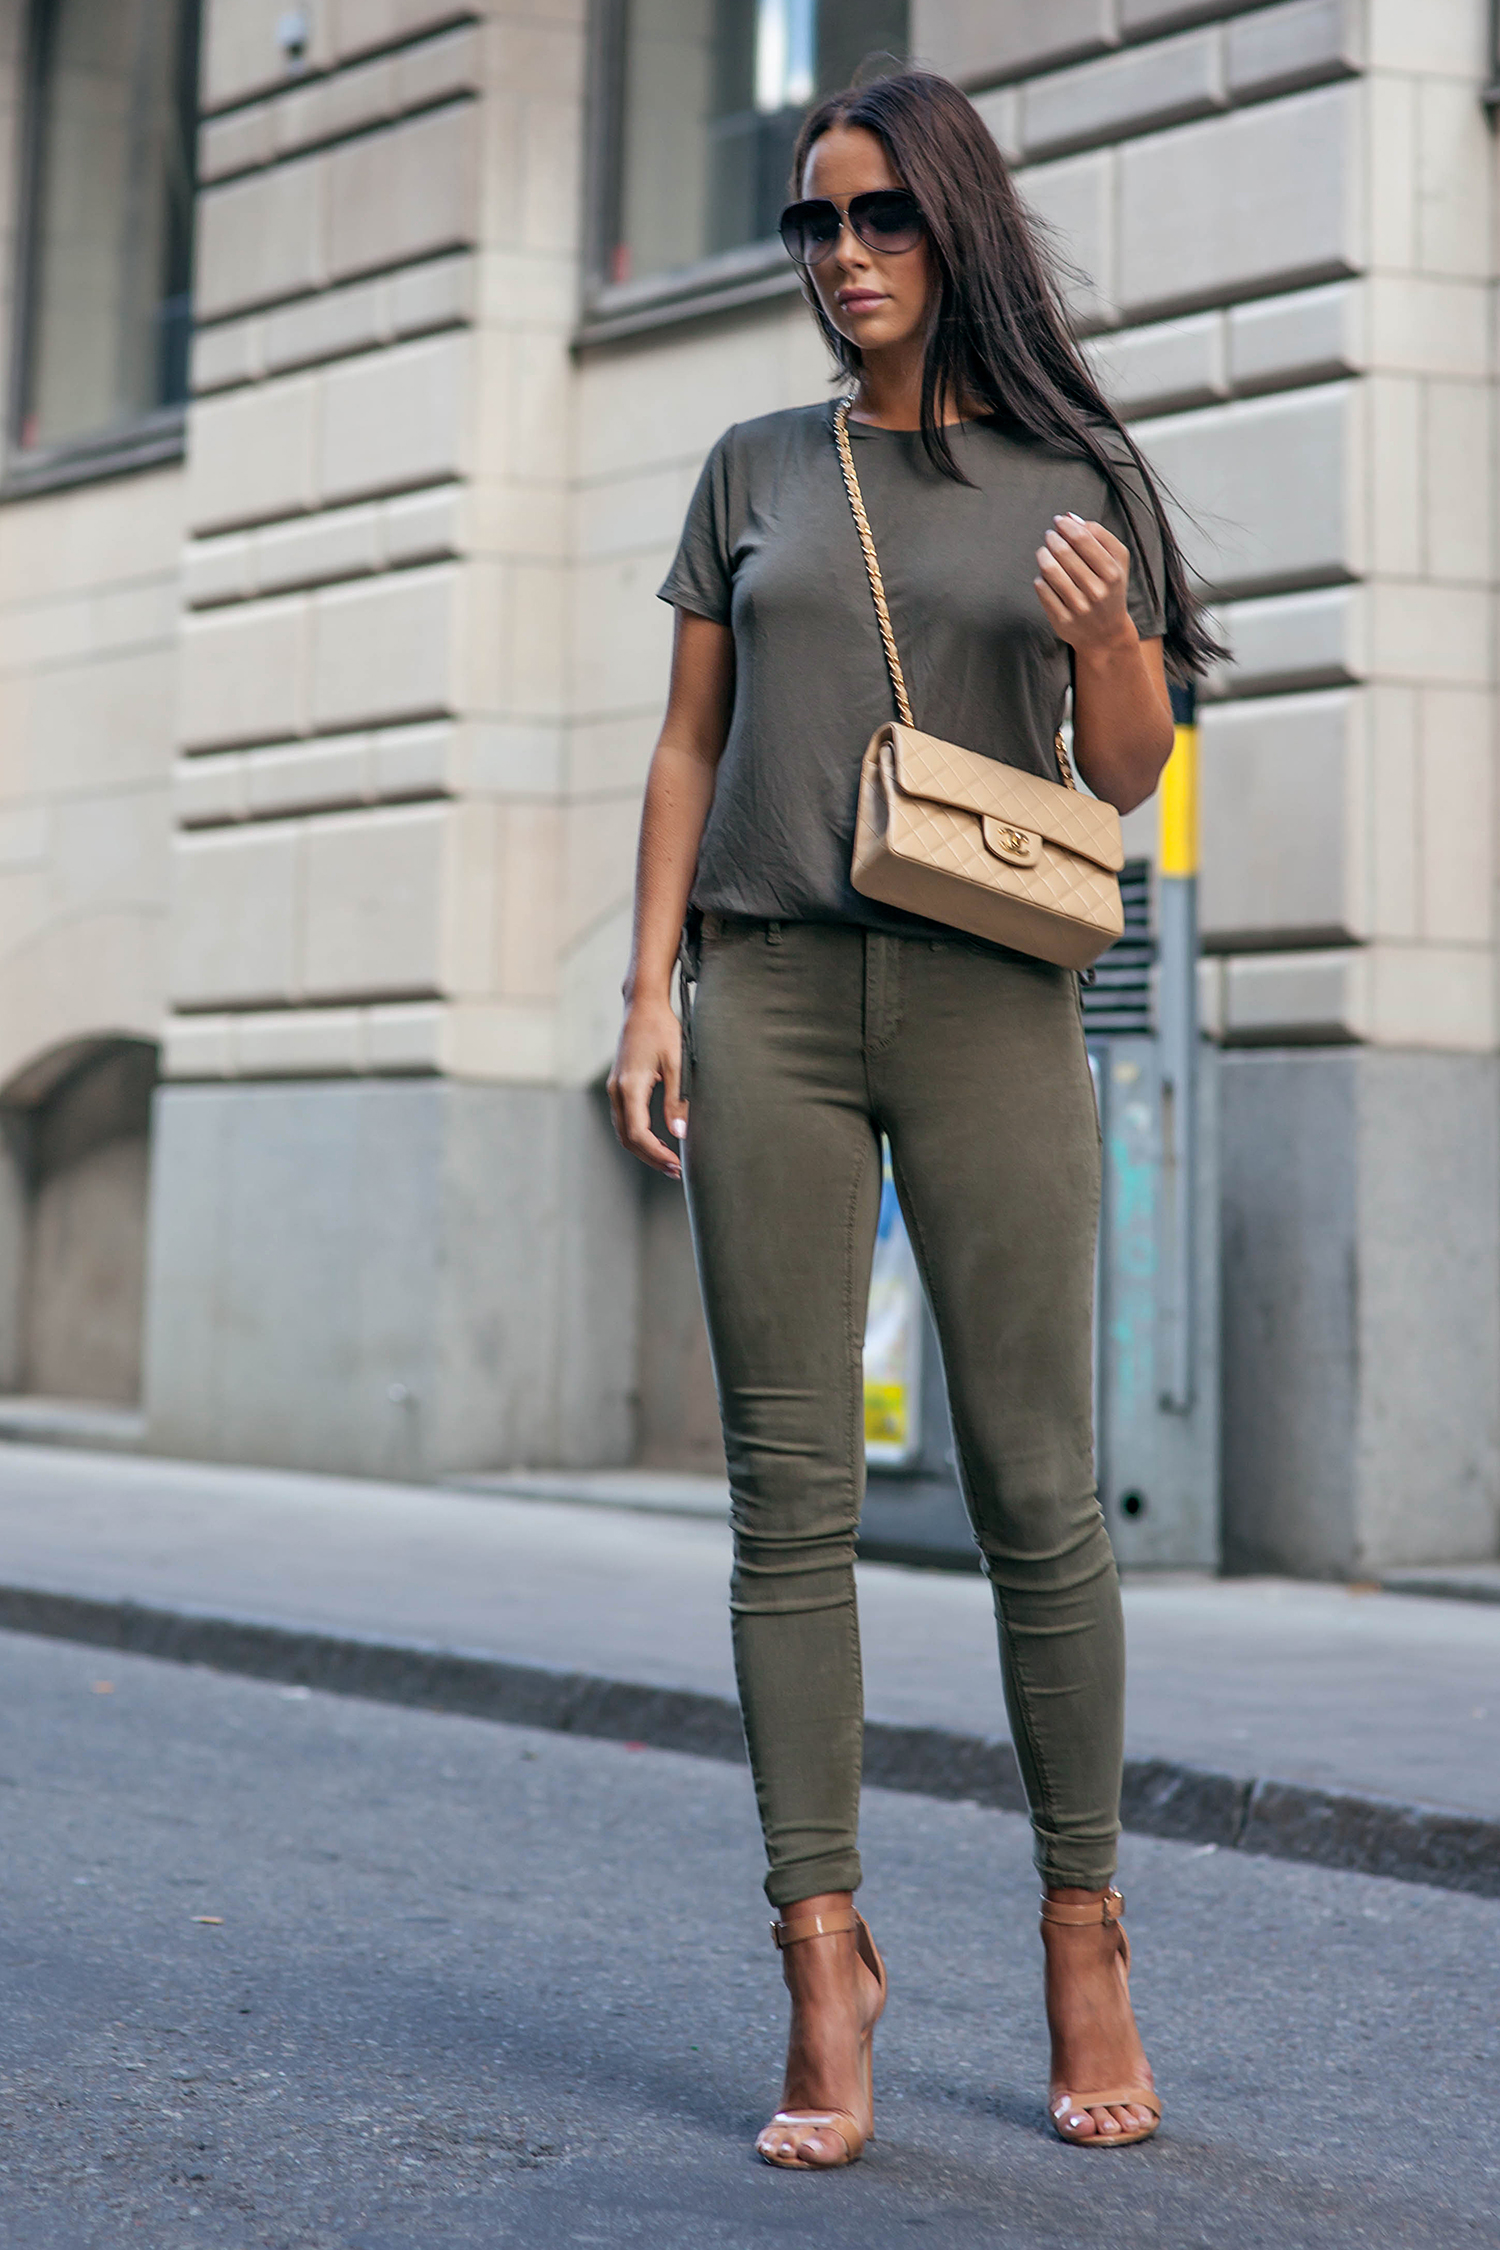 Cute Fall Outfits: How to Dress Well, Feel Great And Look ...